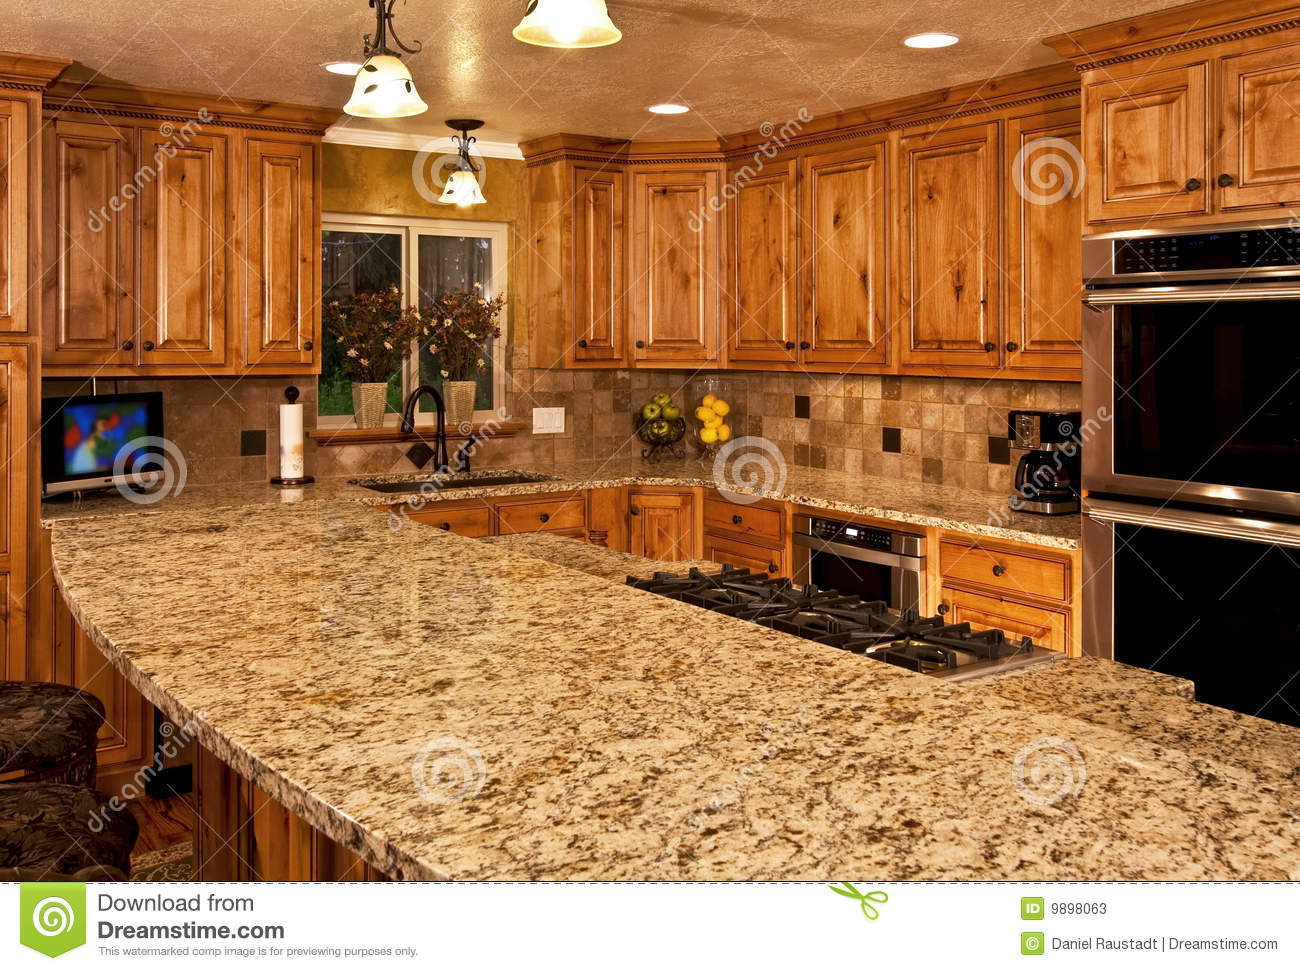 New Kitchen With Center Island Stock Image - Image of ...